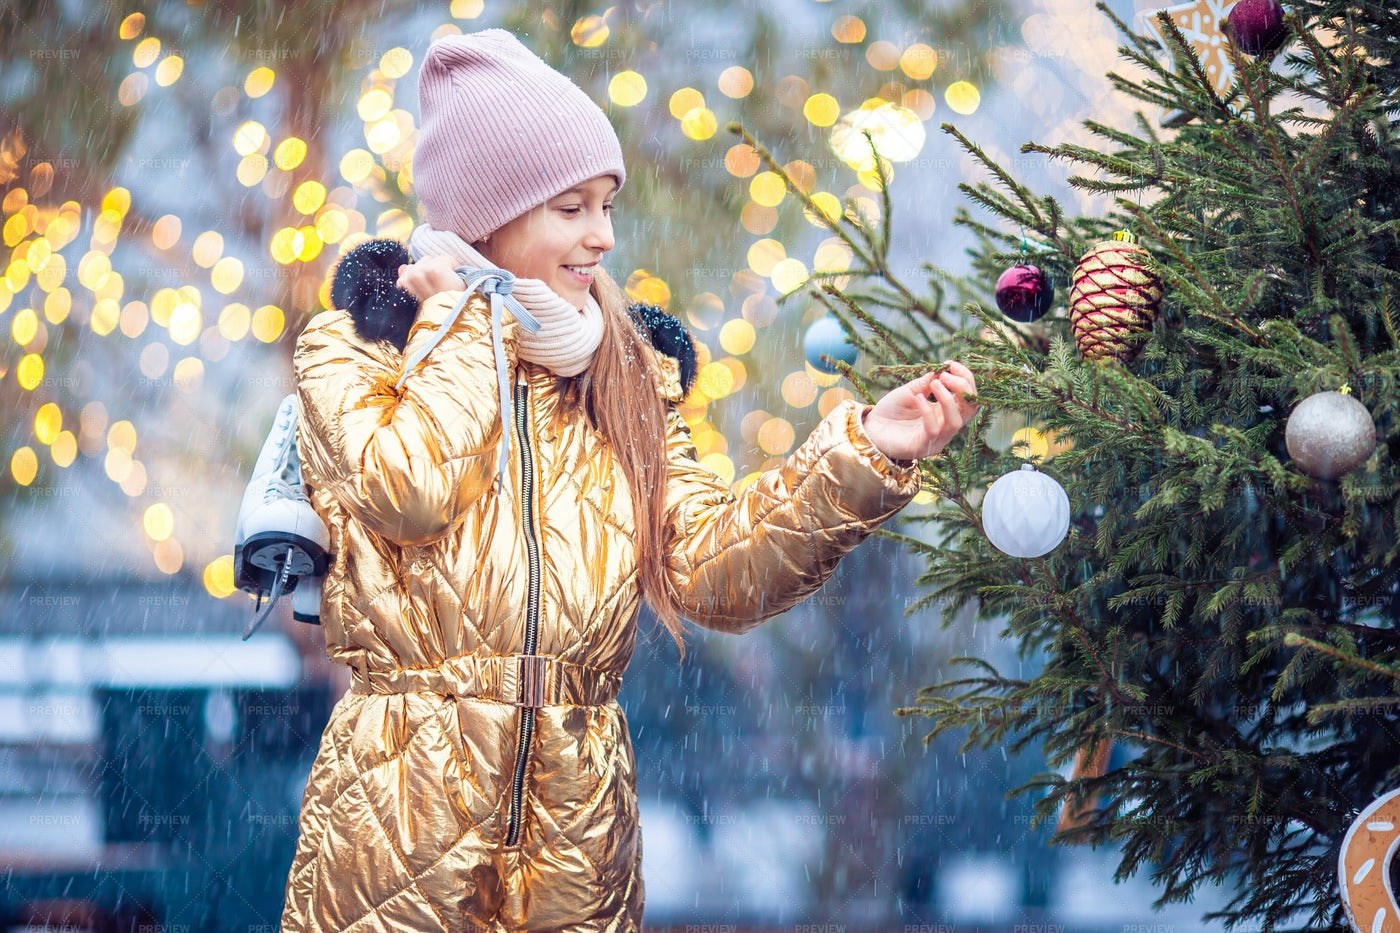 Looking At Christmas Decor Outside: Stock Photos